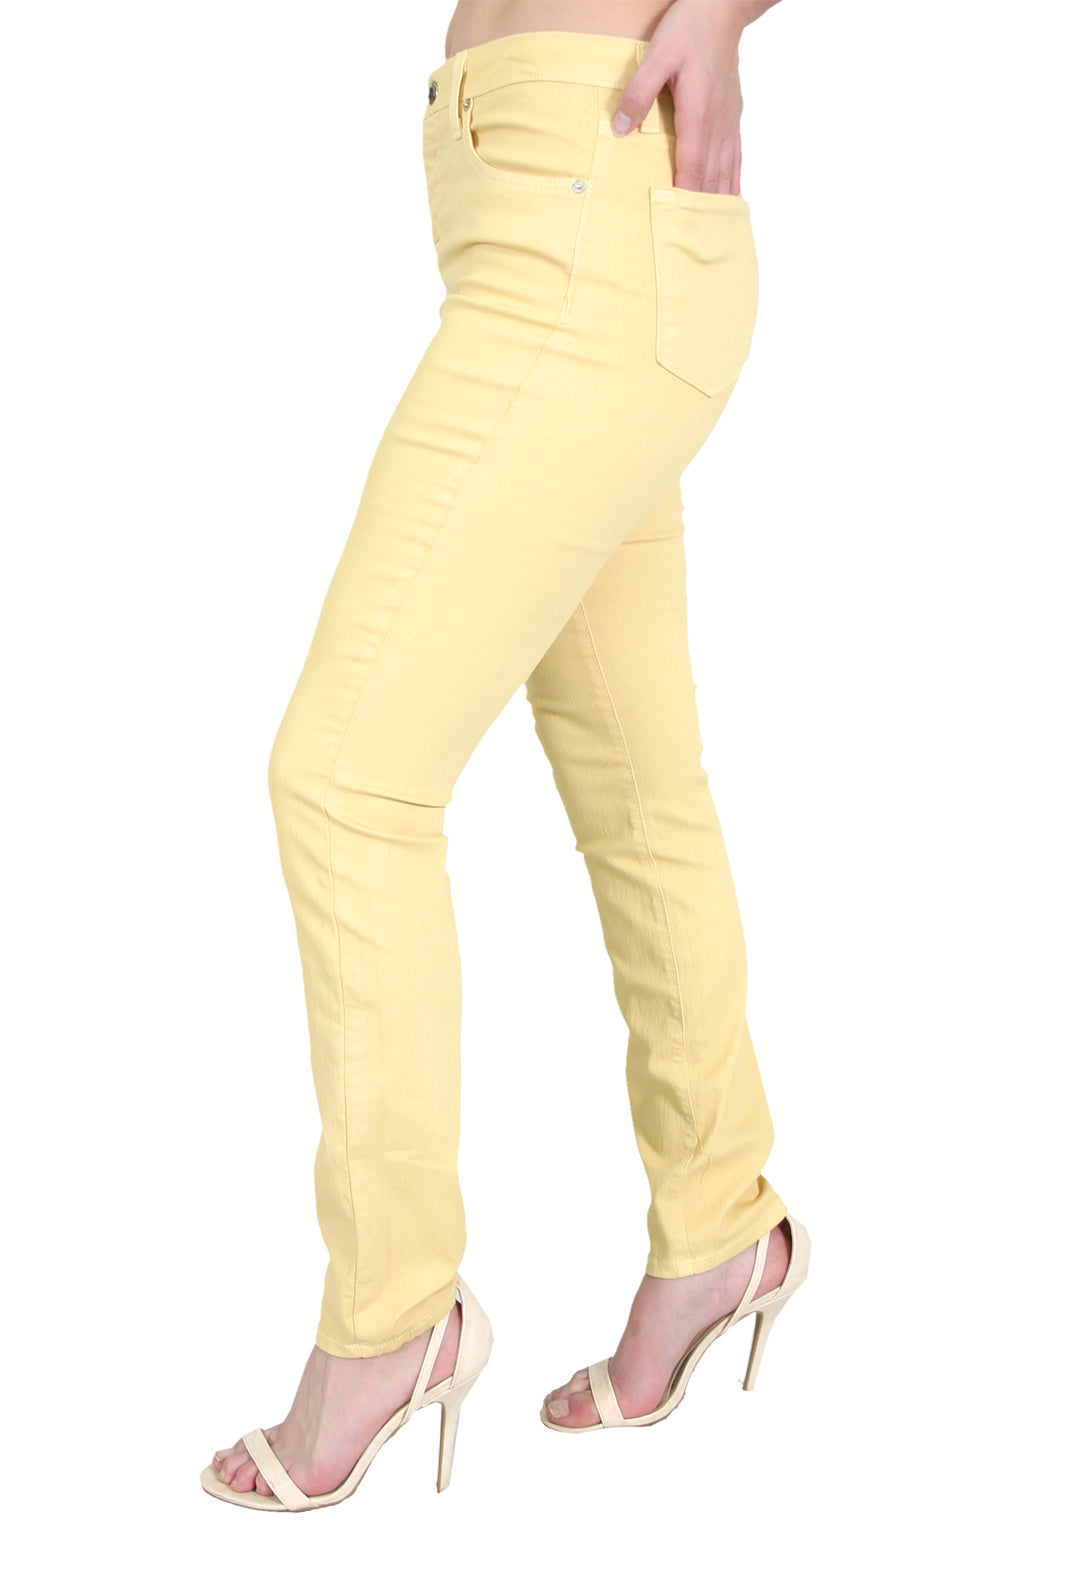 TrueSlim™ Banana Jeggings for Women